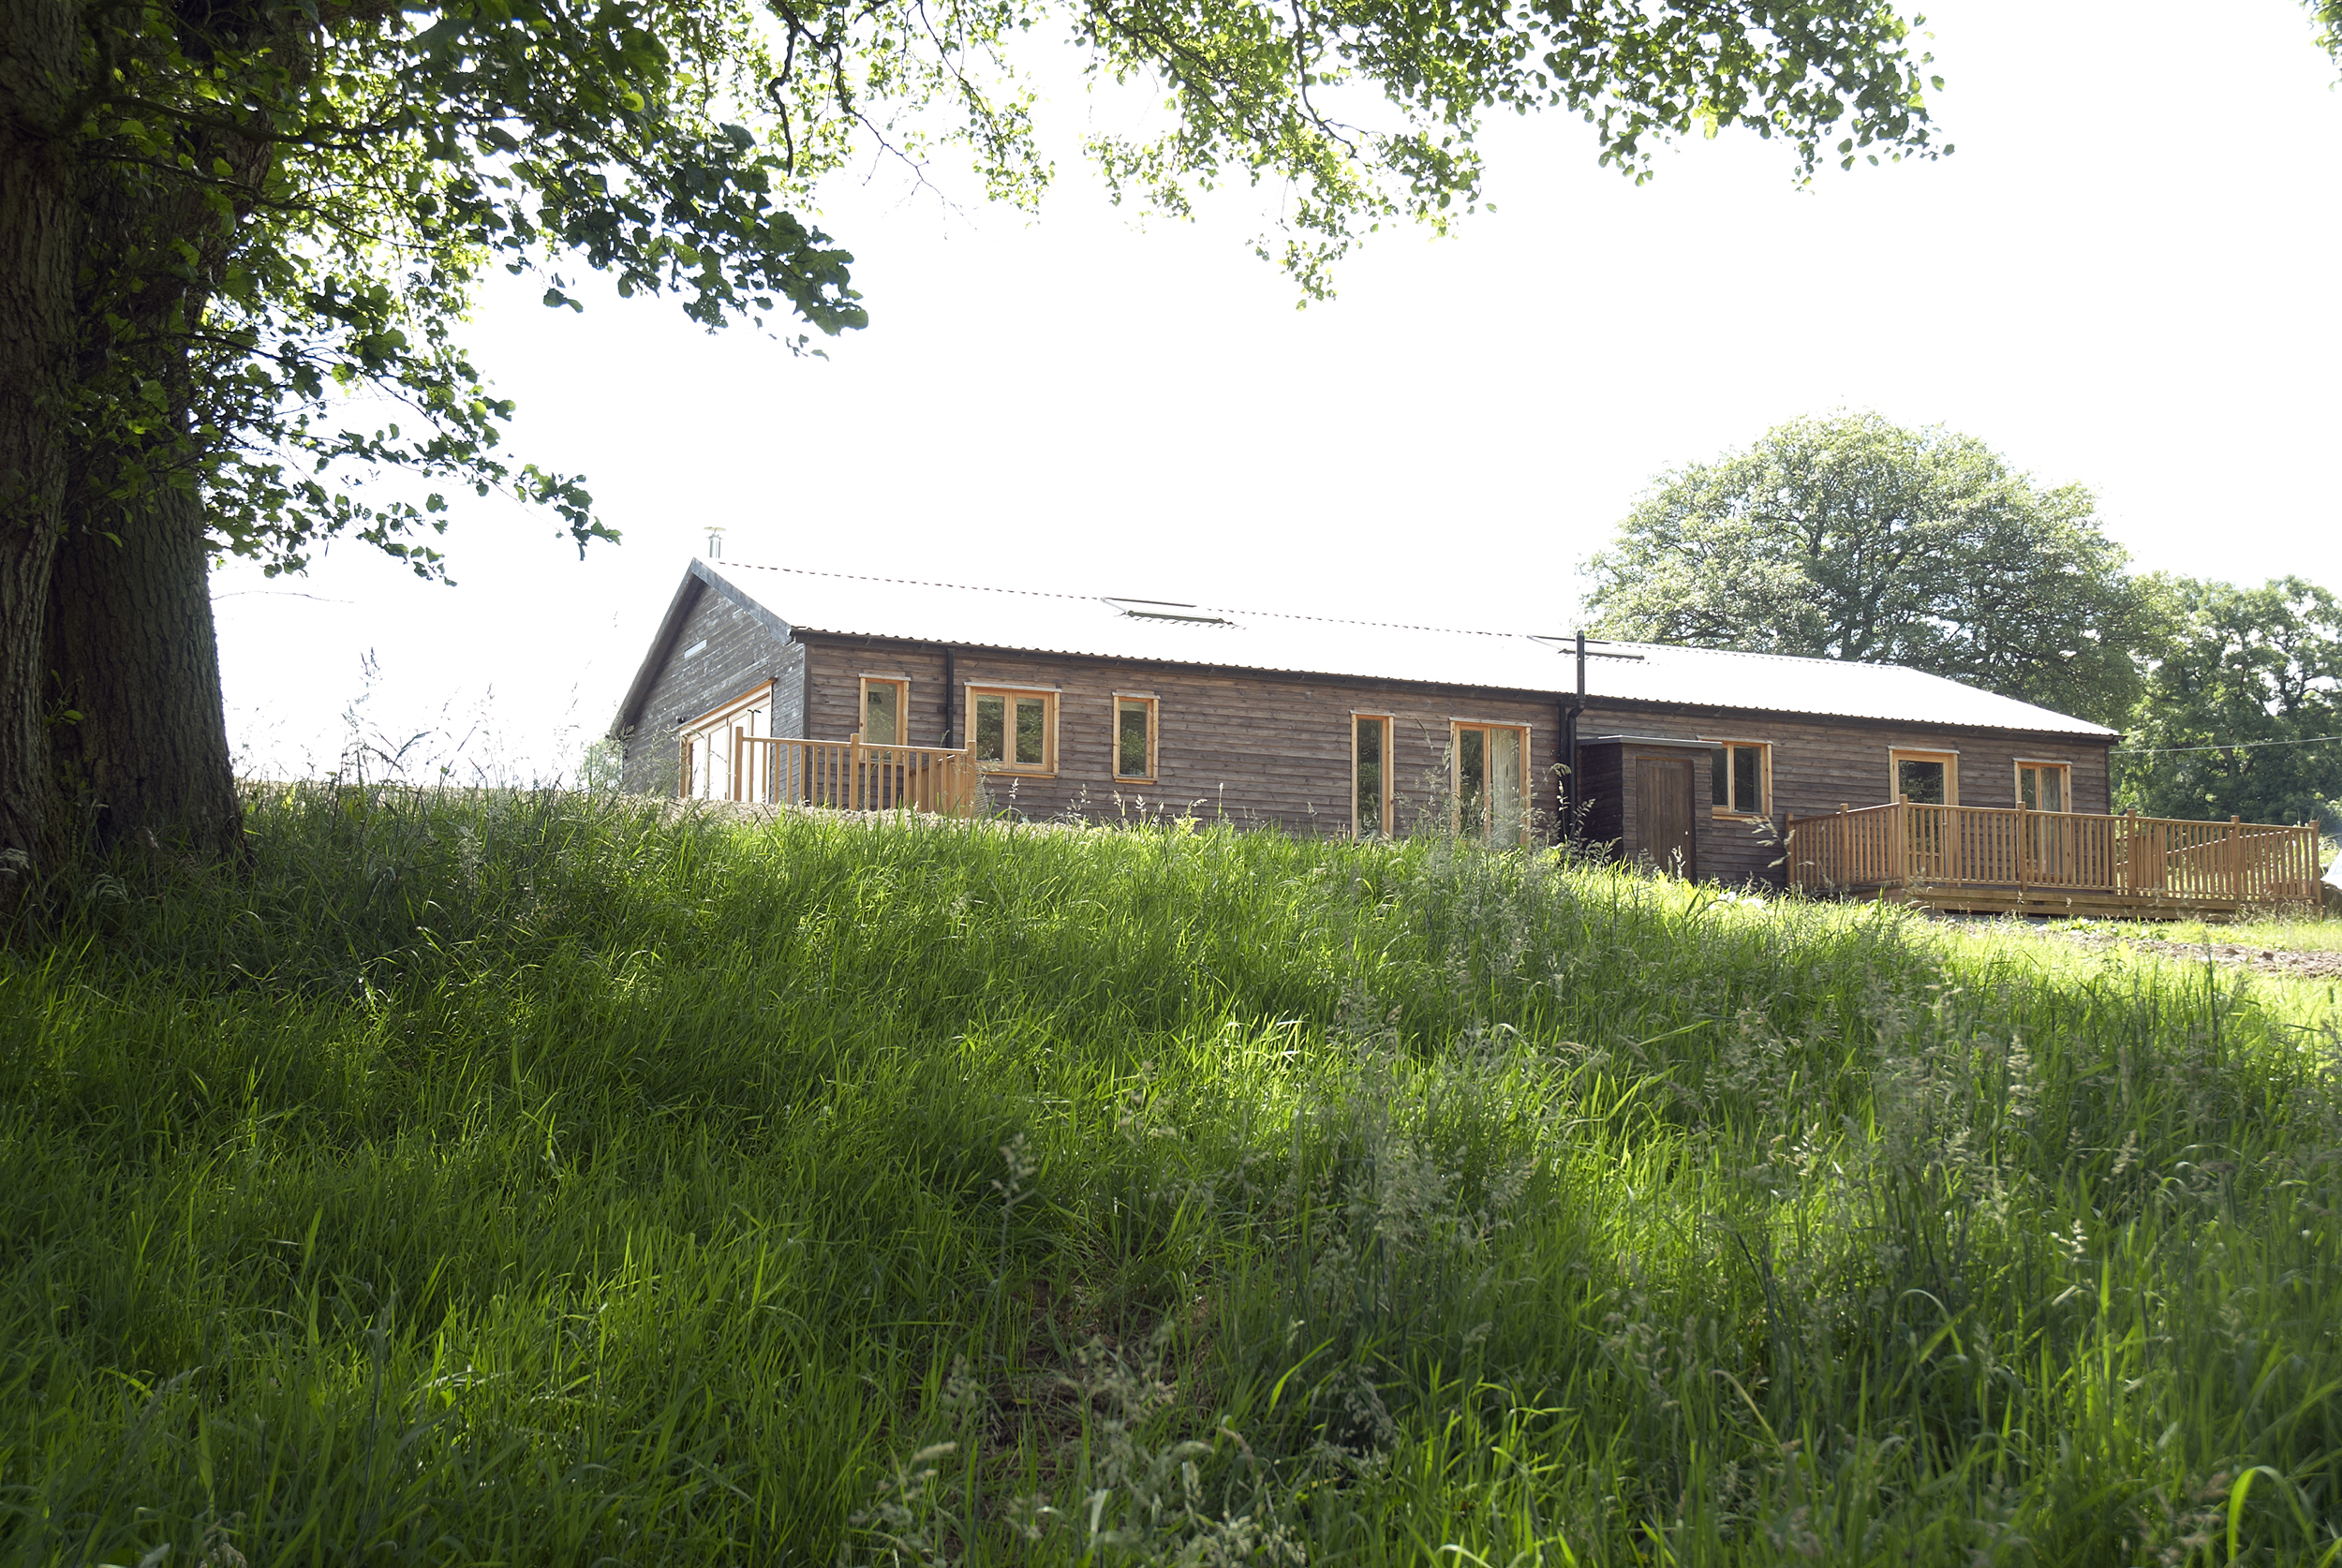 A CONVERTED BARN IN THE HEART OF SHROPSHIRE